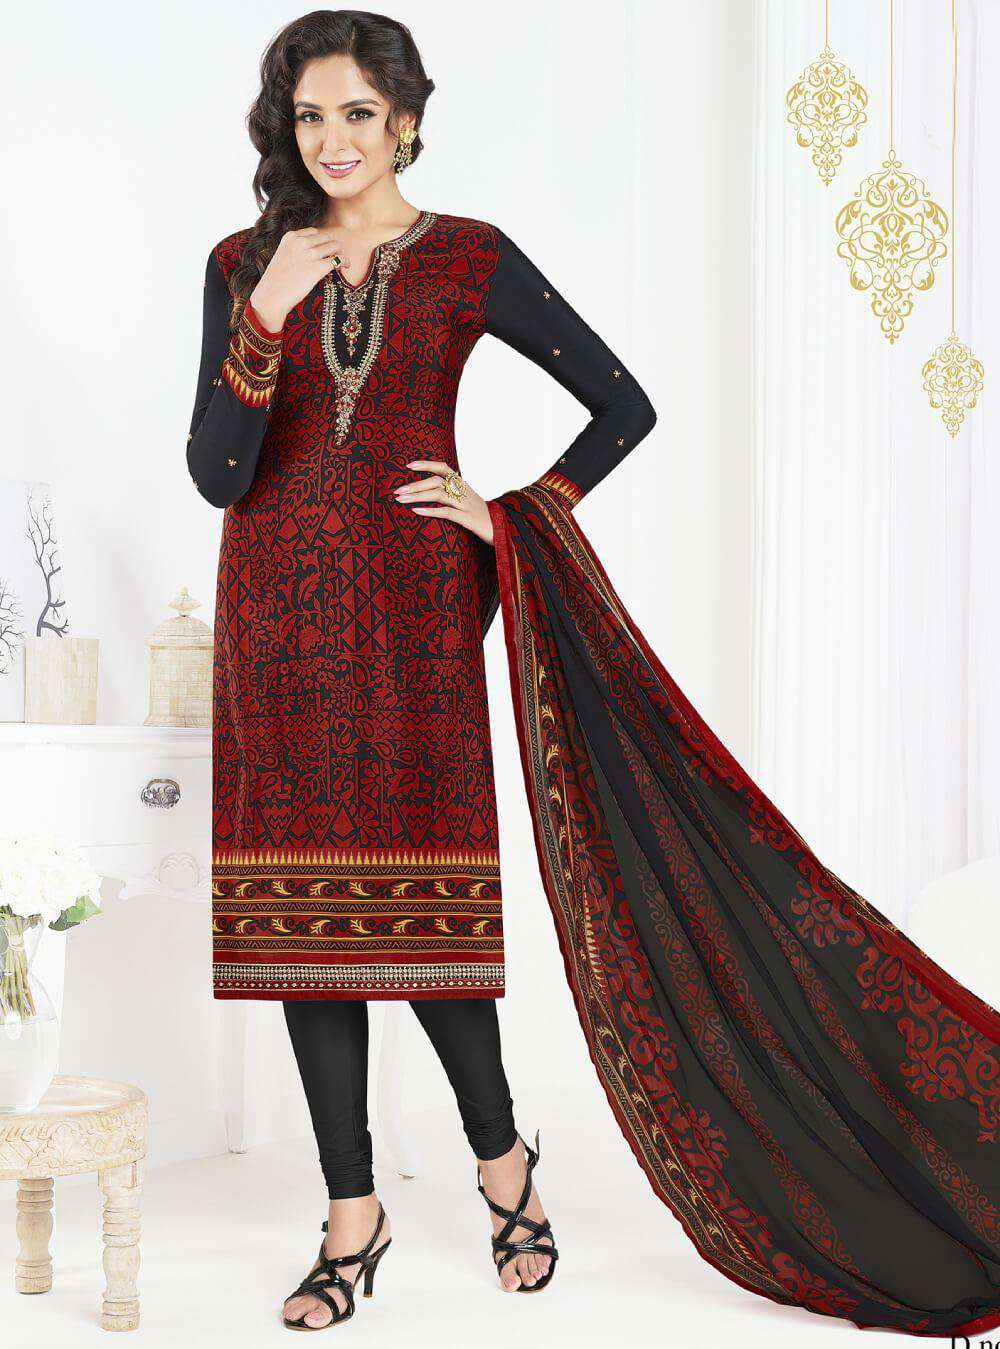 Red & Black Straight Look Printed French Crepe Salwar Kameez MYSK-1418